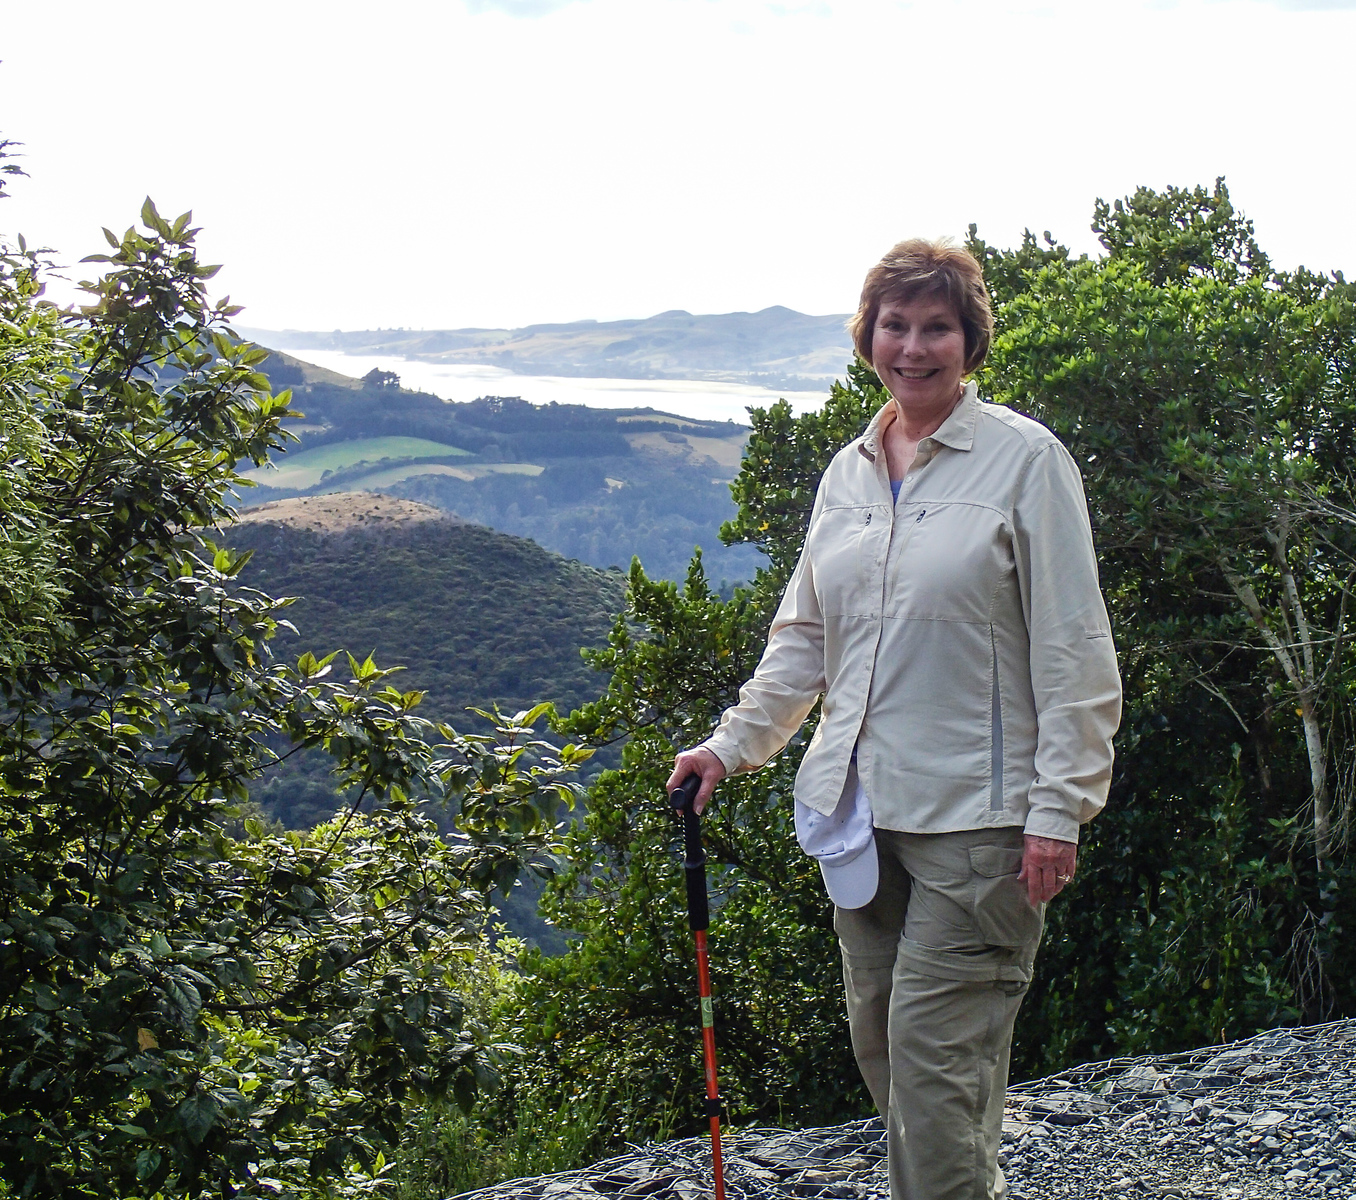 A woman hiker poses on a hike in Dunedin, New Zealand.